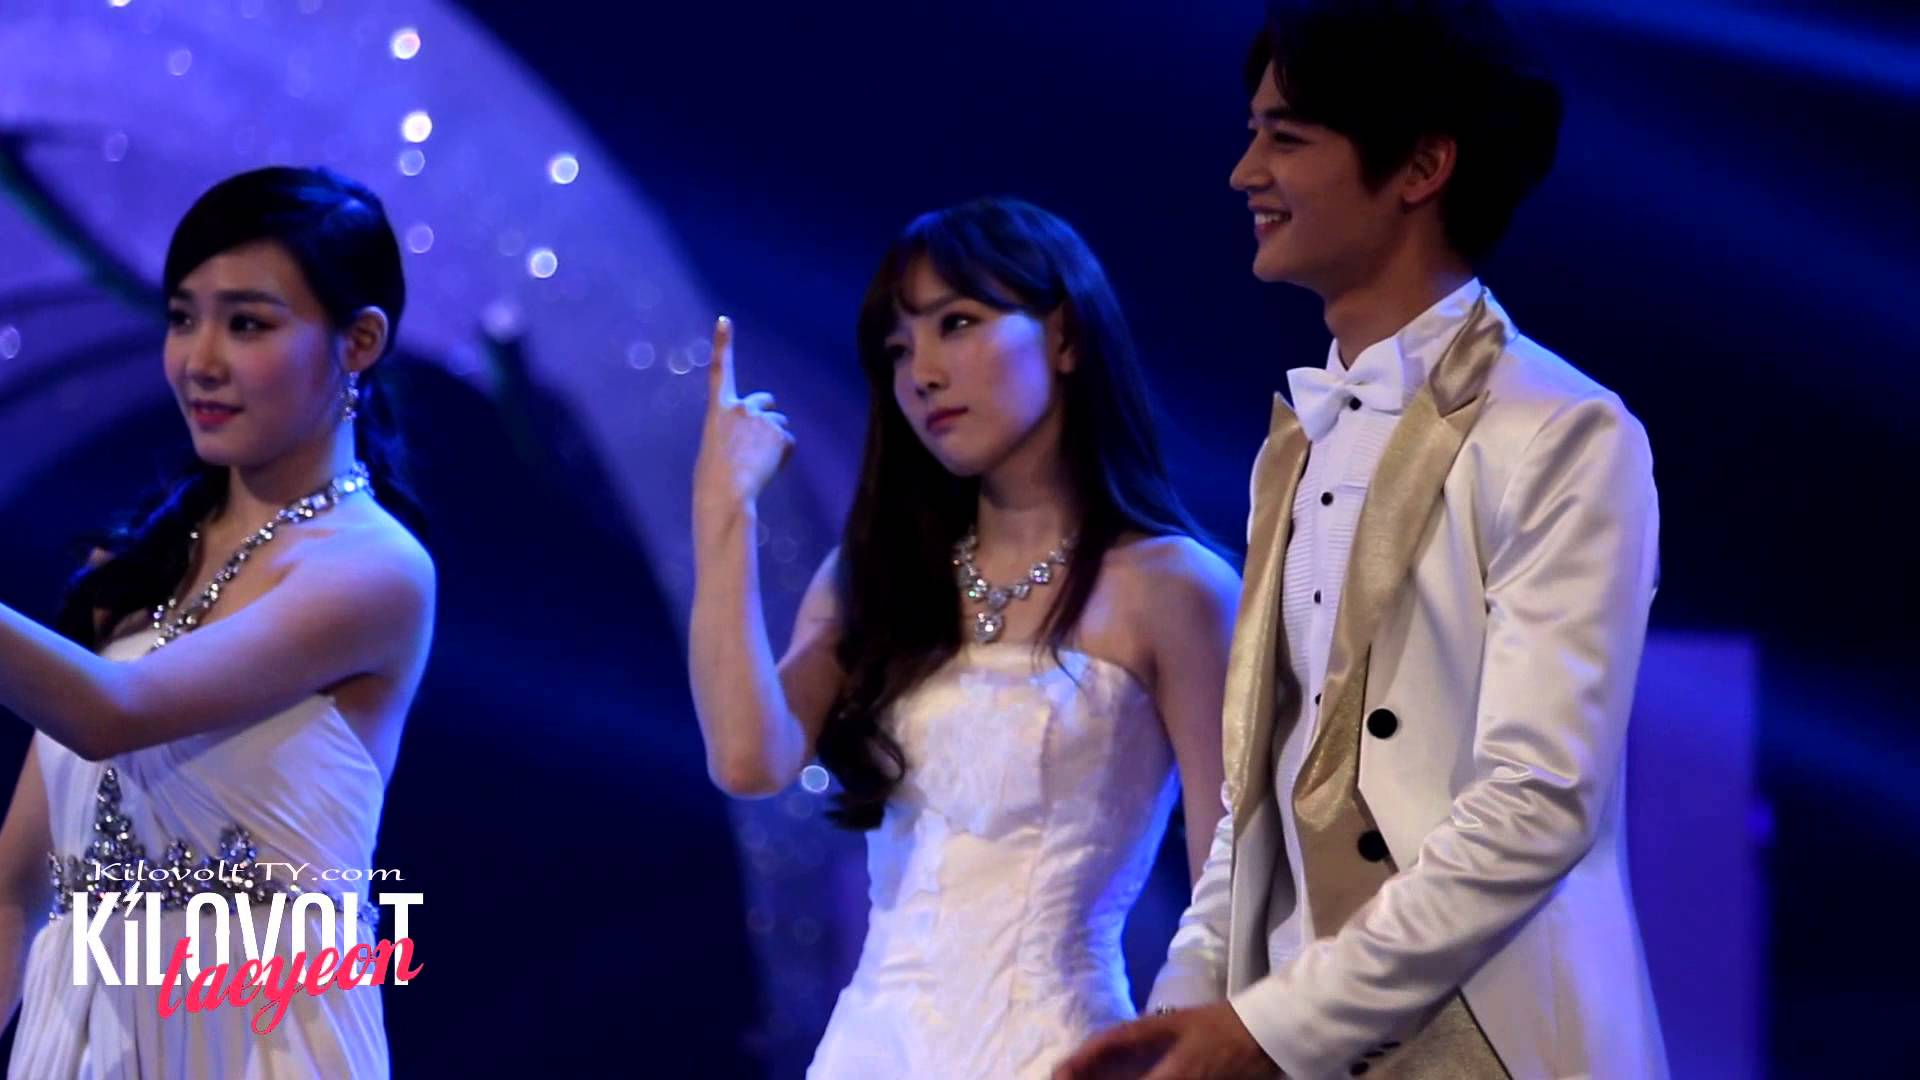 Image: Fan taken photo of Taeyeon and Minho next to Tiffany during event